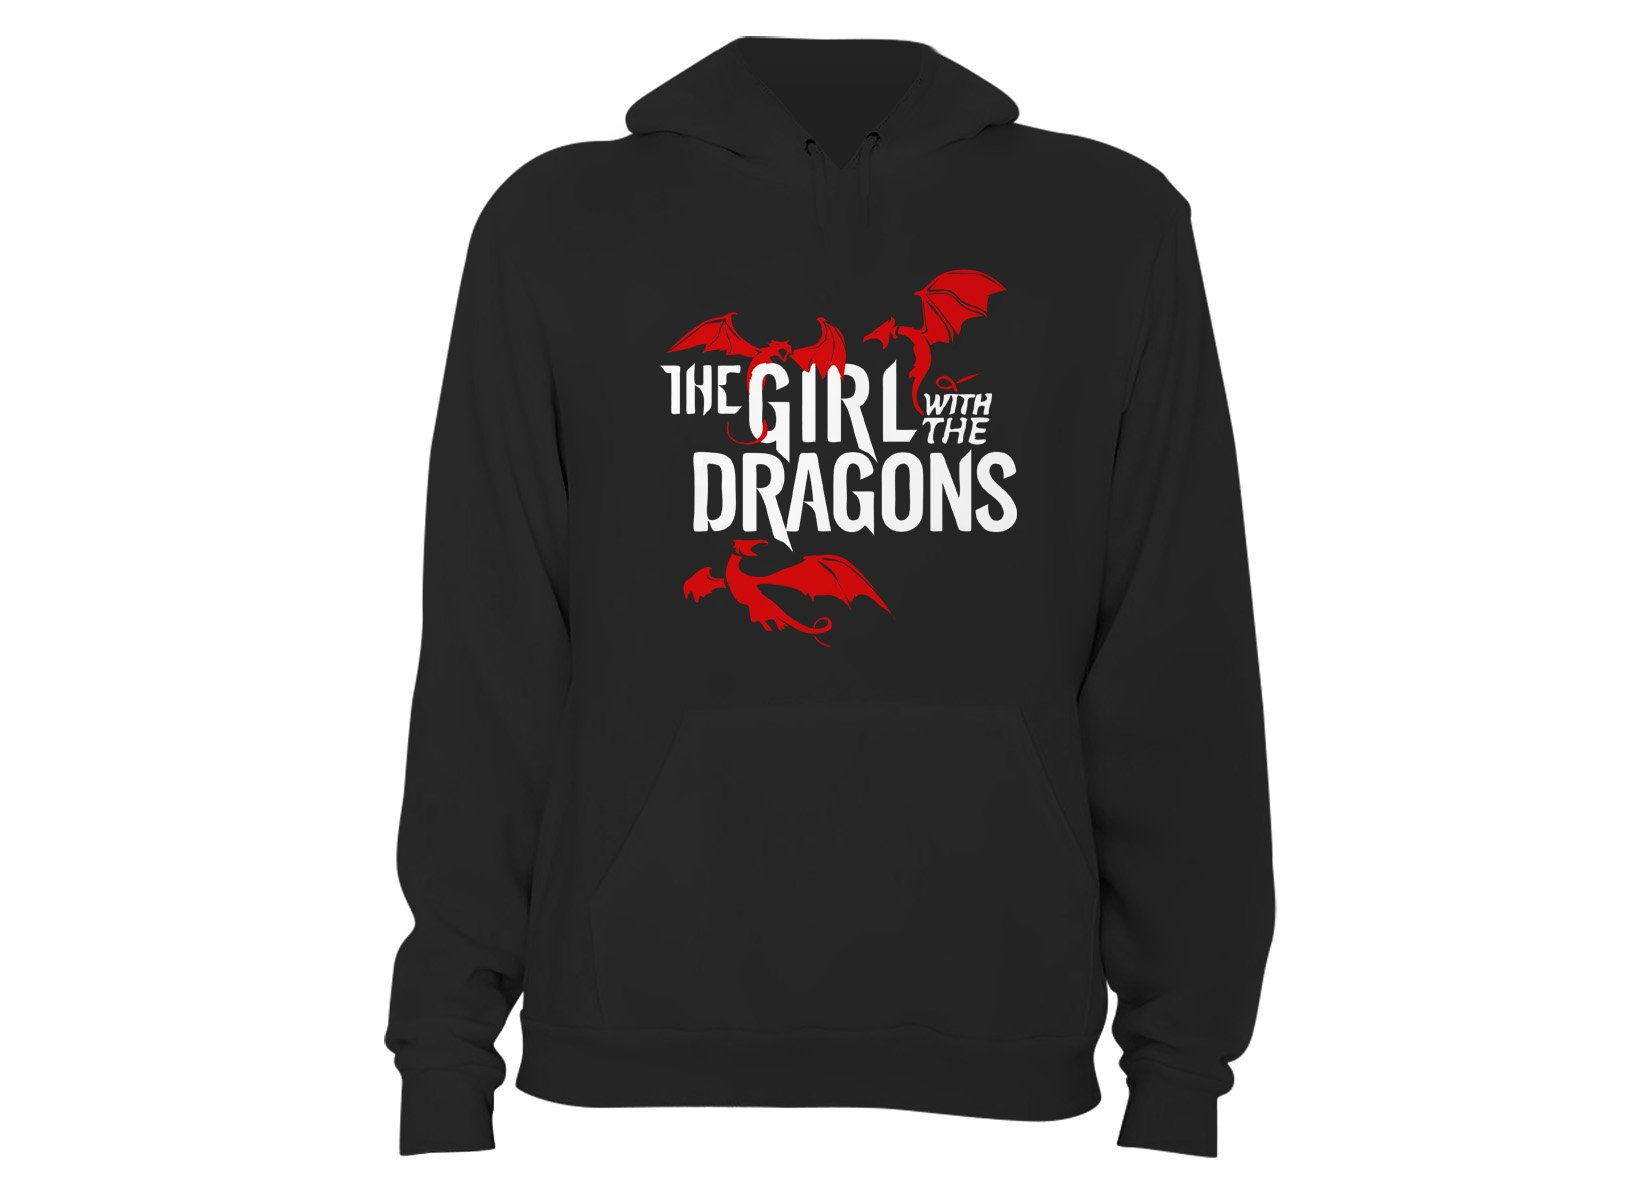 The Girl With The Dragons on Hoodie